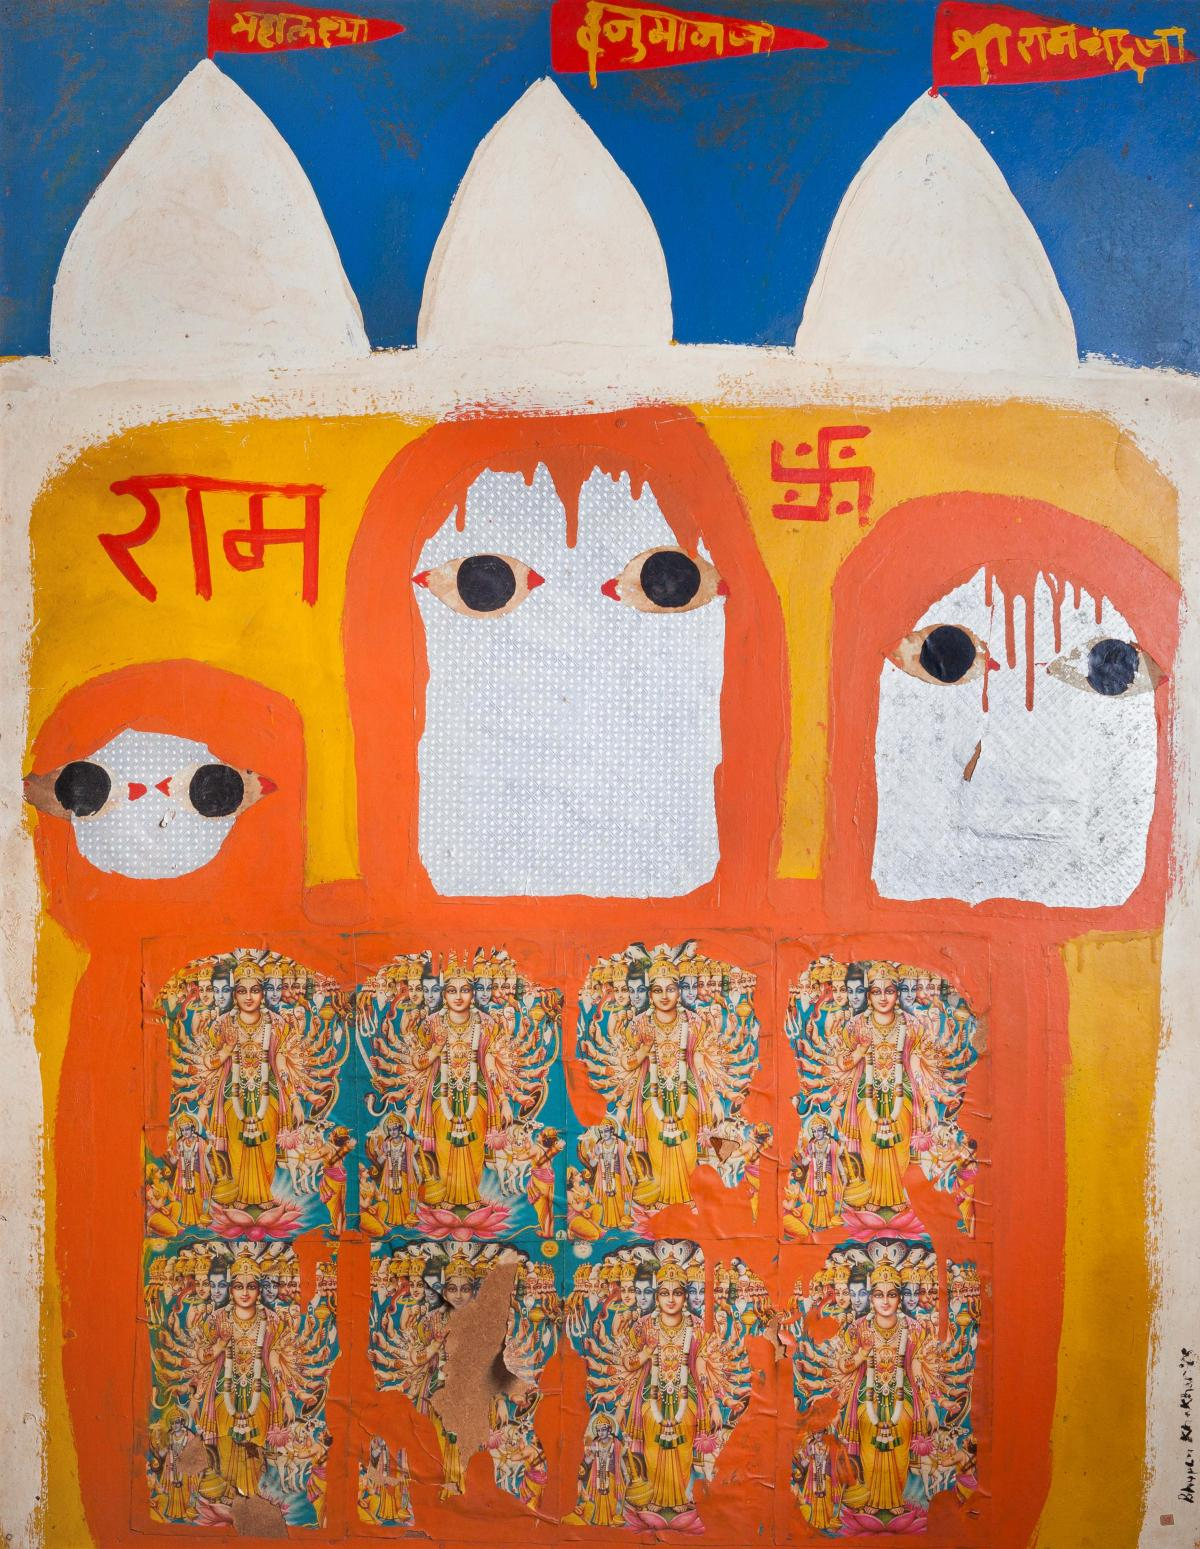 Bhupen Khakhar, Interior of a Hindu Temple III, 1965 Mixed media (printed paper, paint and silver foil) on board. Courtesy of the Museum of Art & Photography